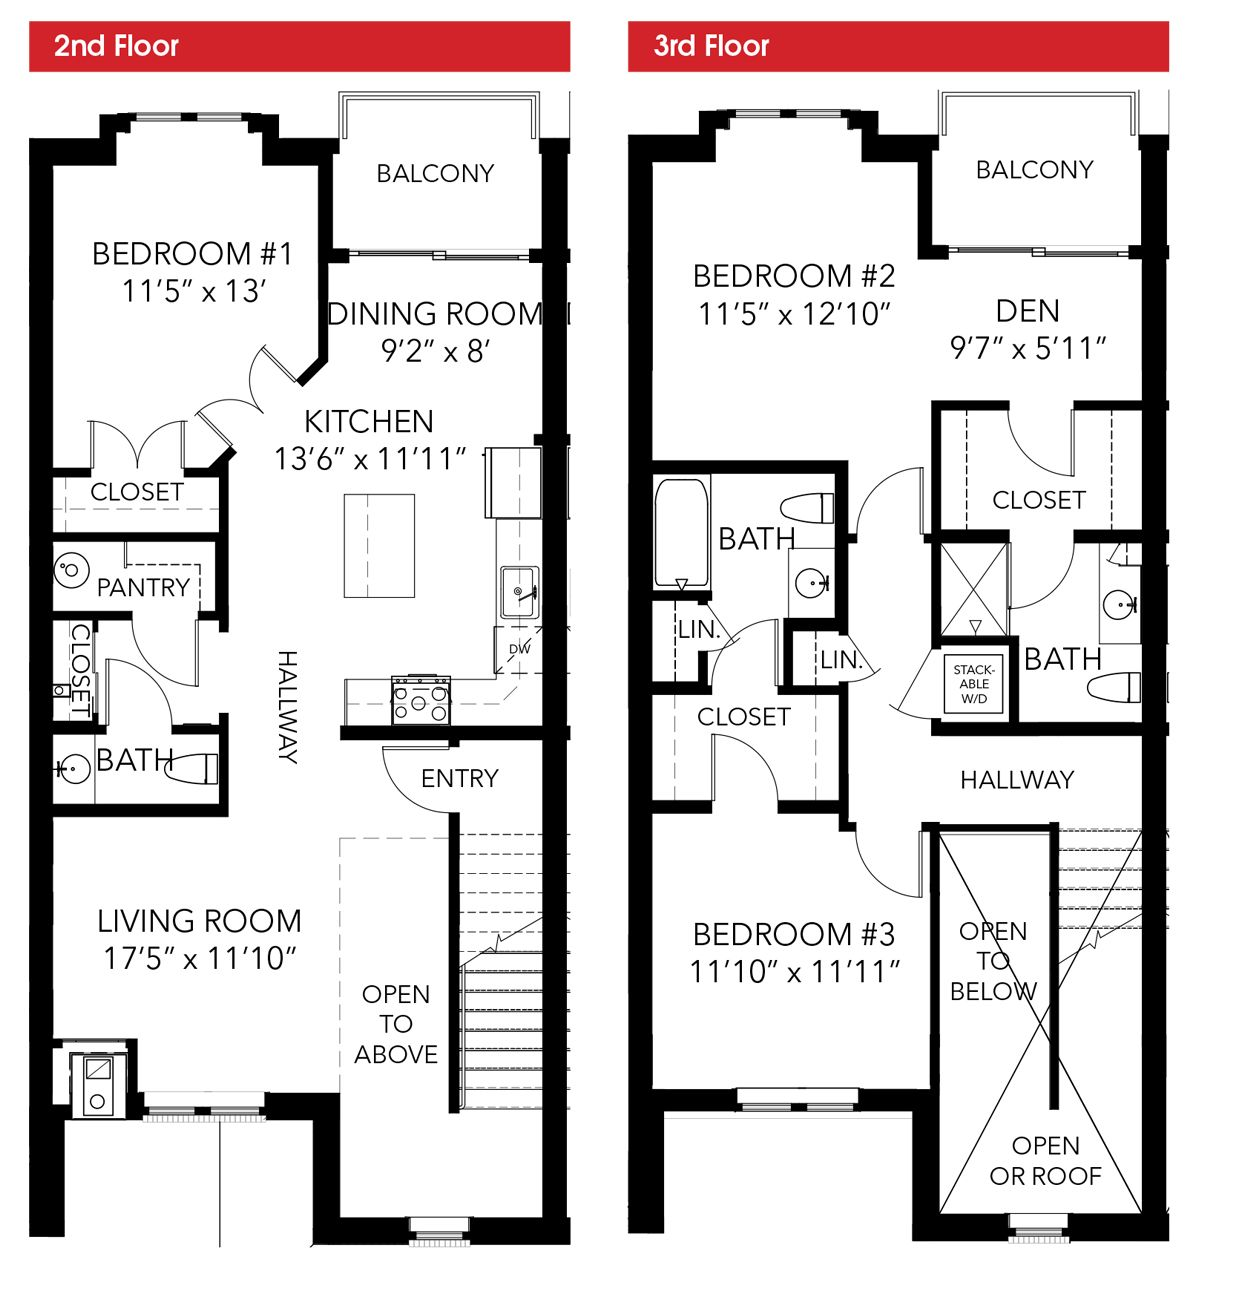 oakbourne floor plan 3 bedroom 2 story leed certified